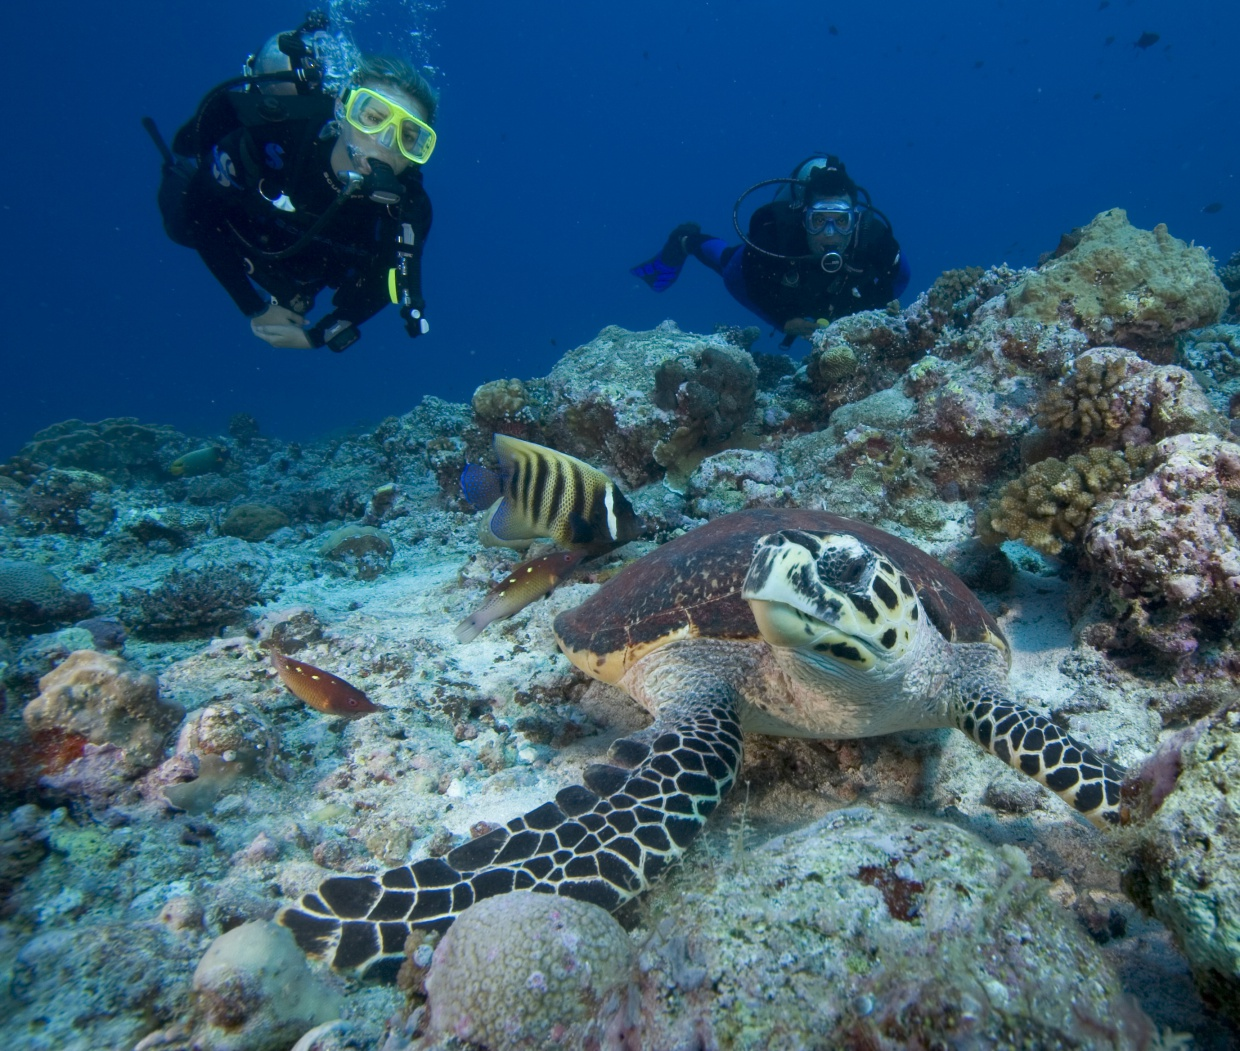 Divers_and_turtle_[7063-LARGE].jpg